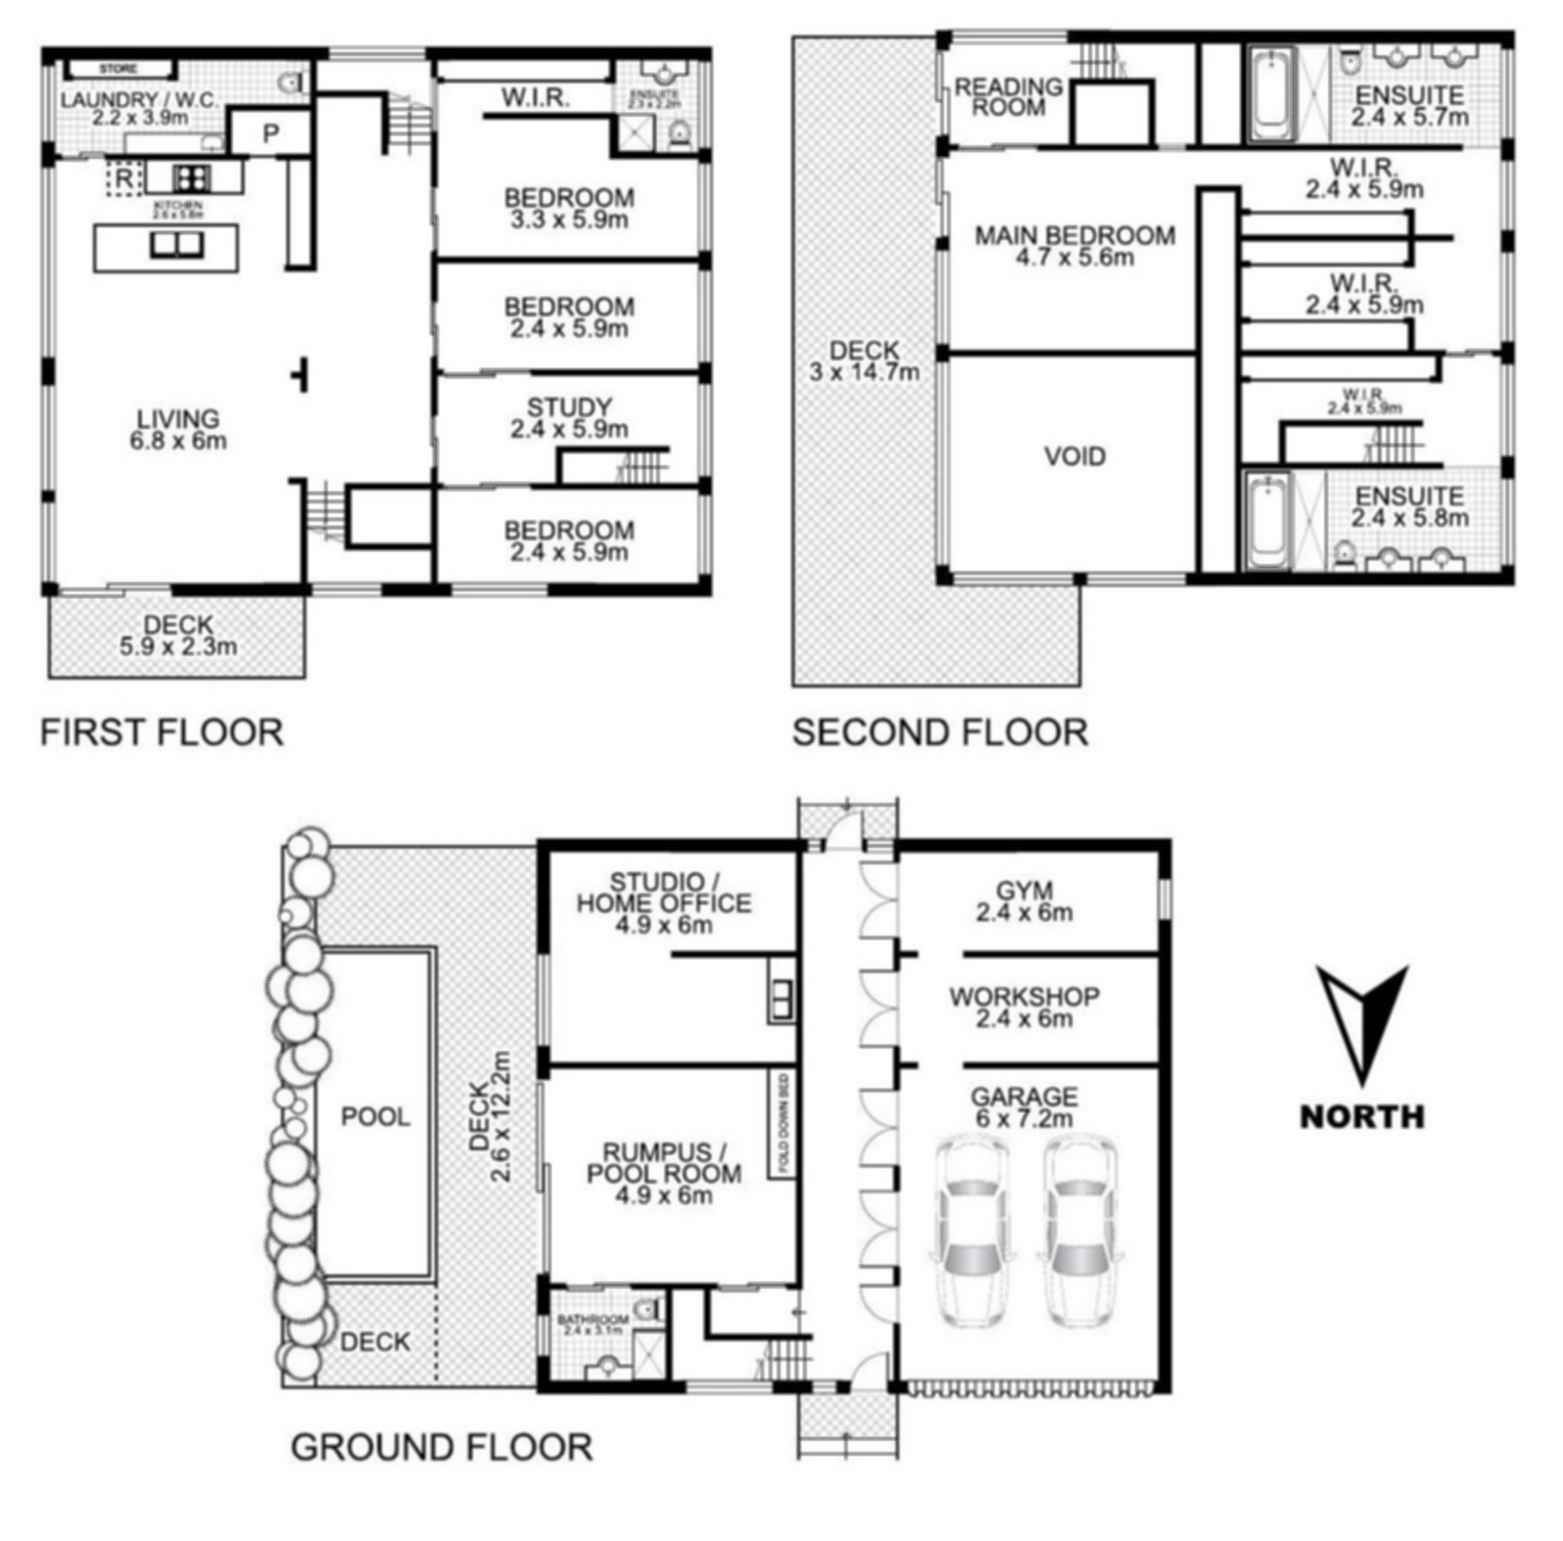 31 Shipping Container Home - Floor Plan